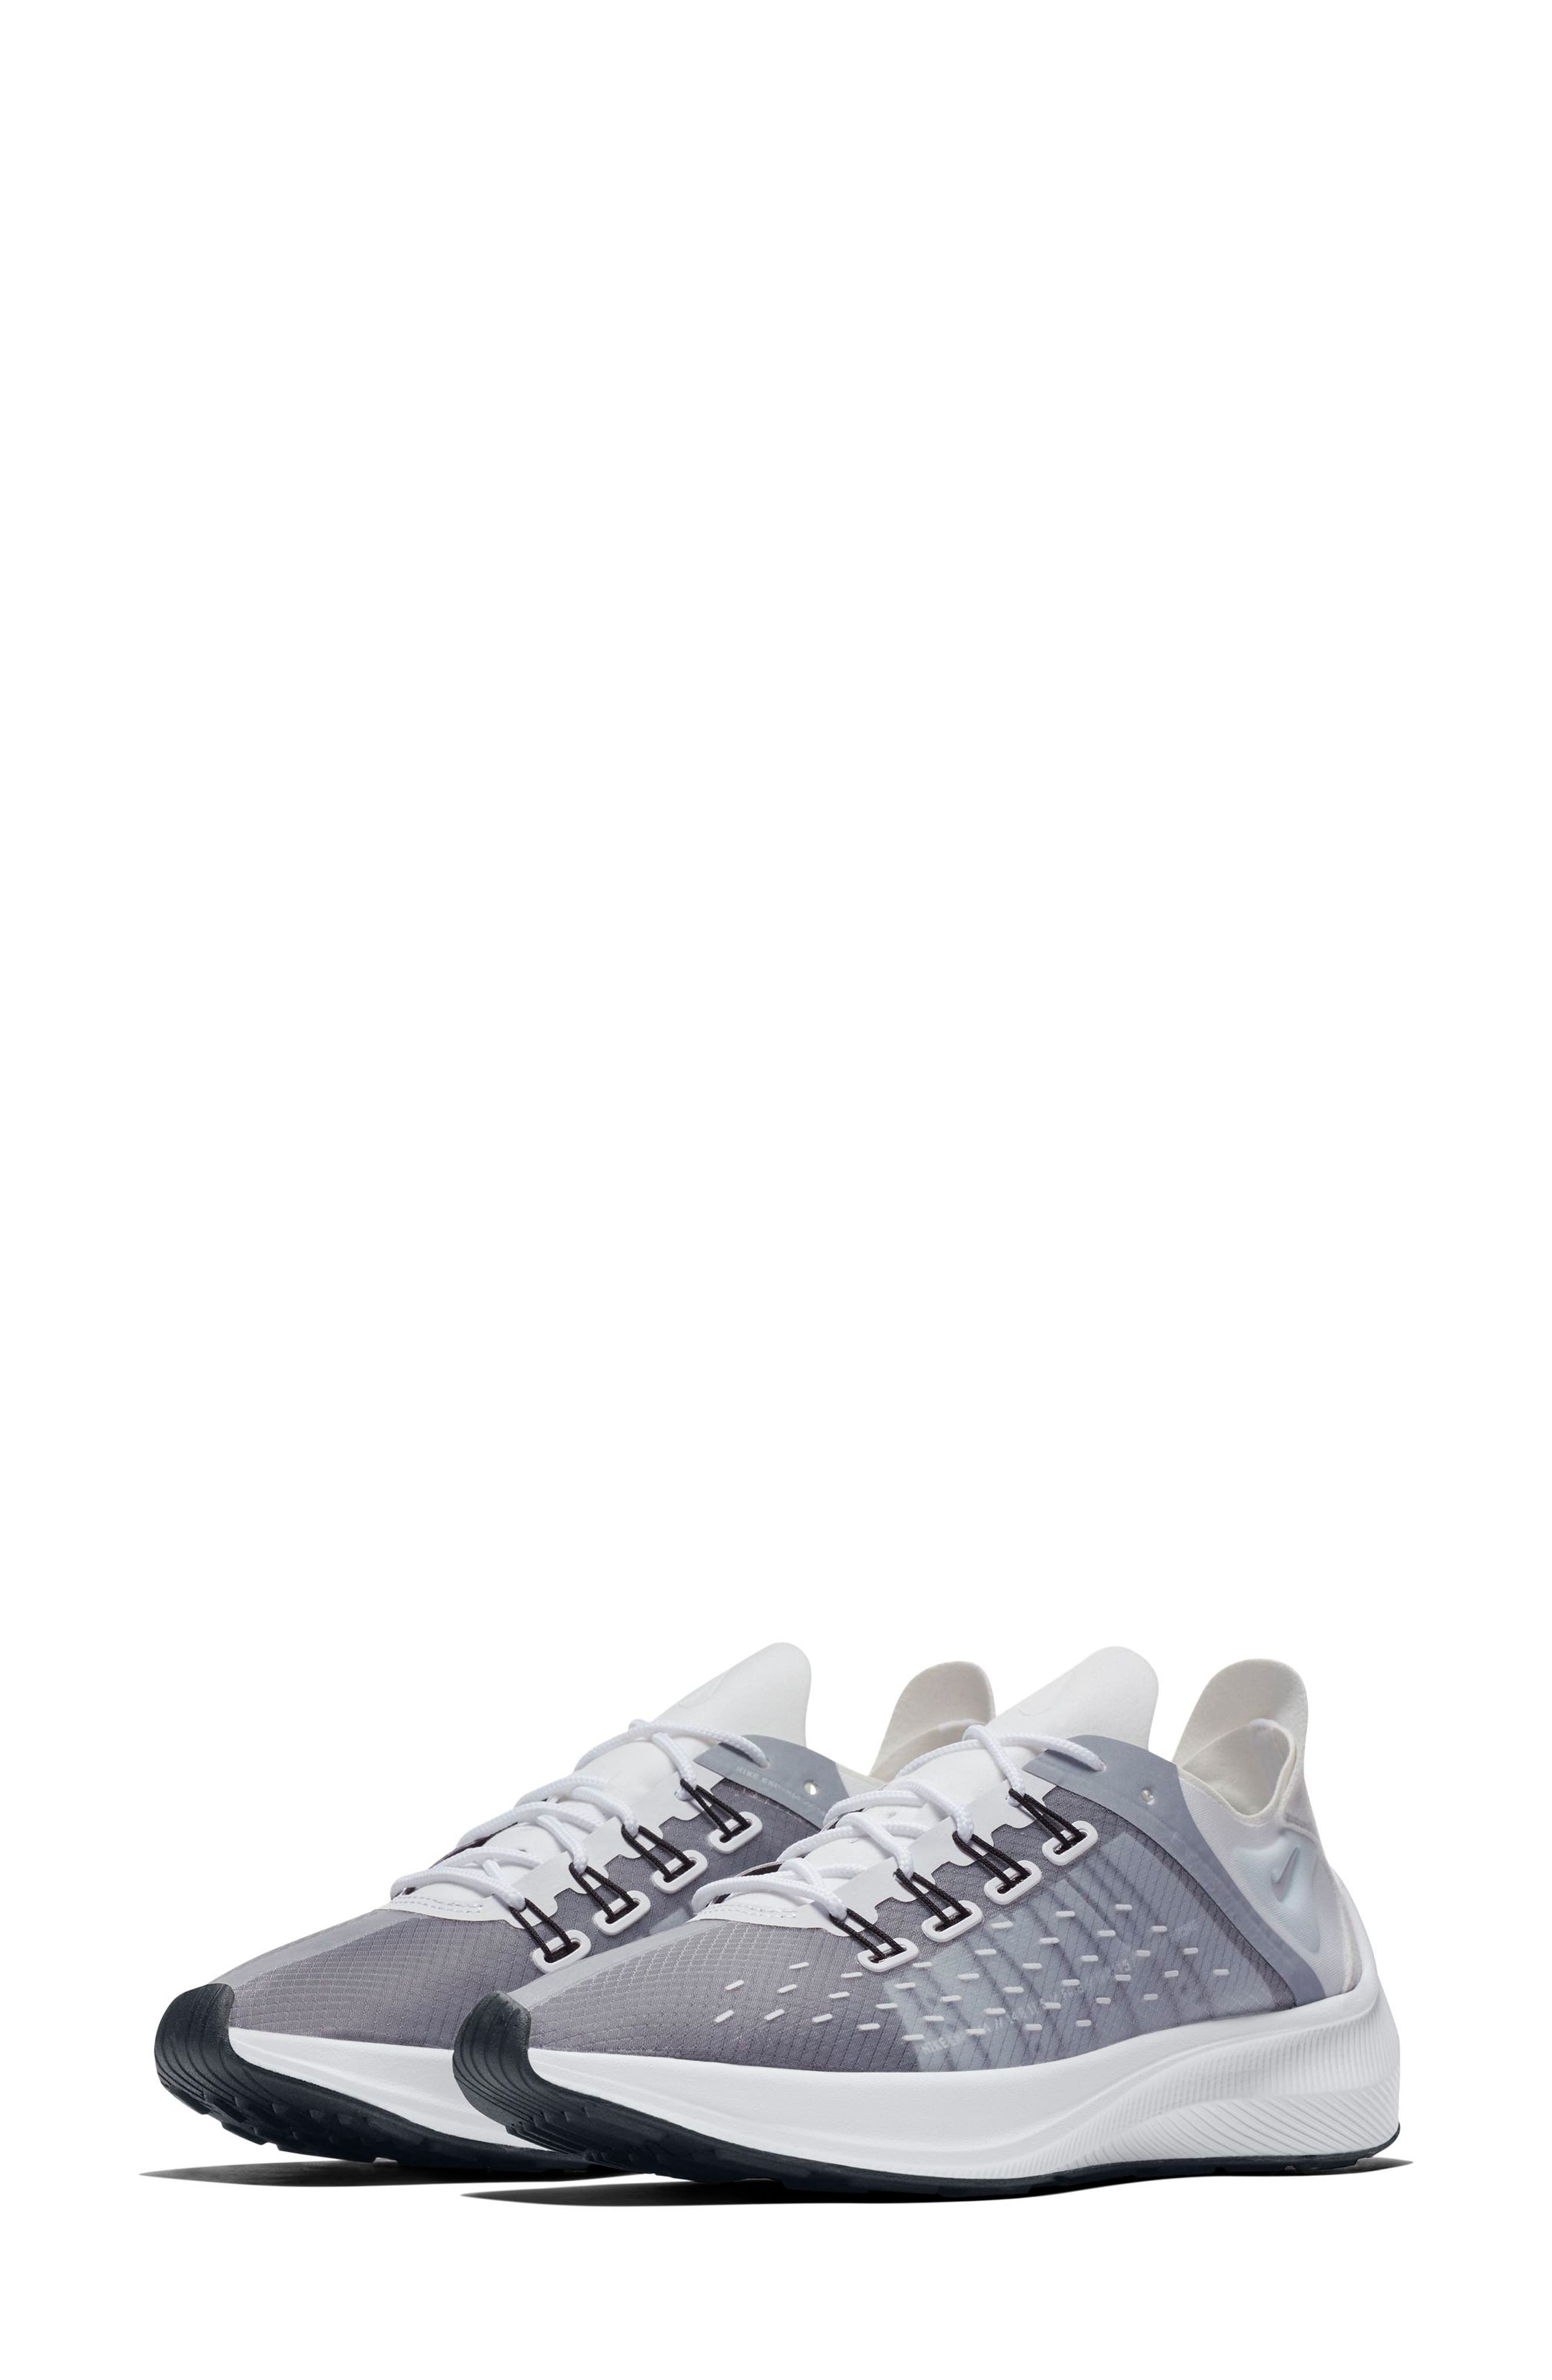 EXP-X14 Sneaker,                         Main,                         color, WHITE/ WOLF GREY/ BLACK